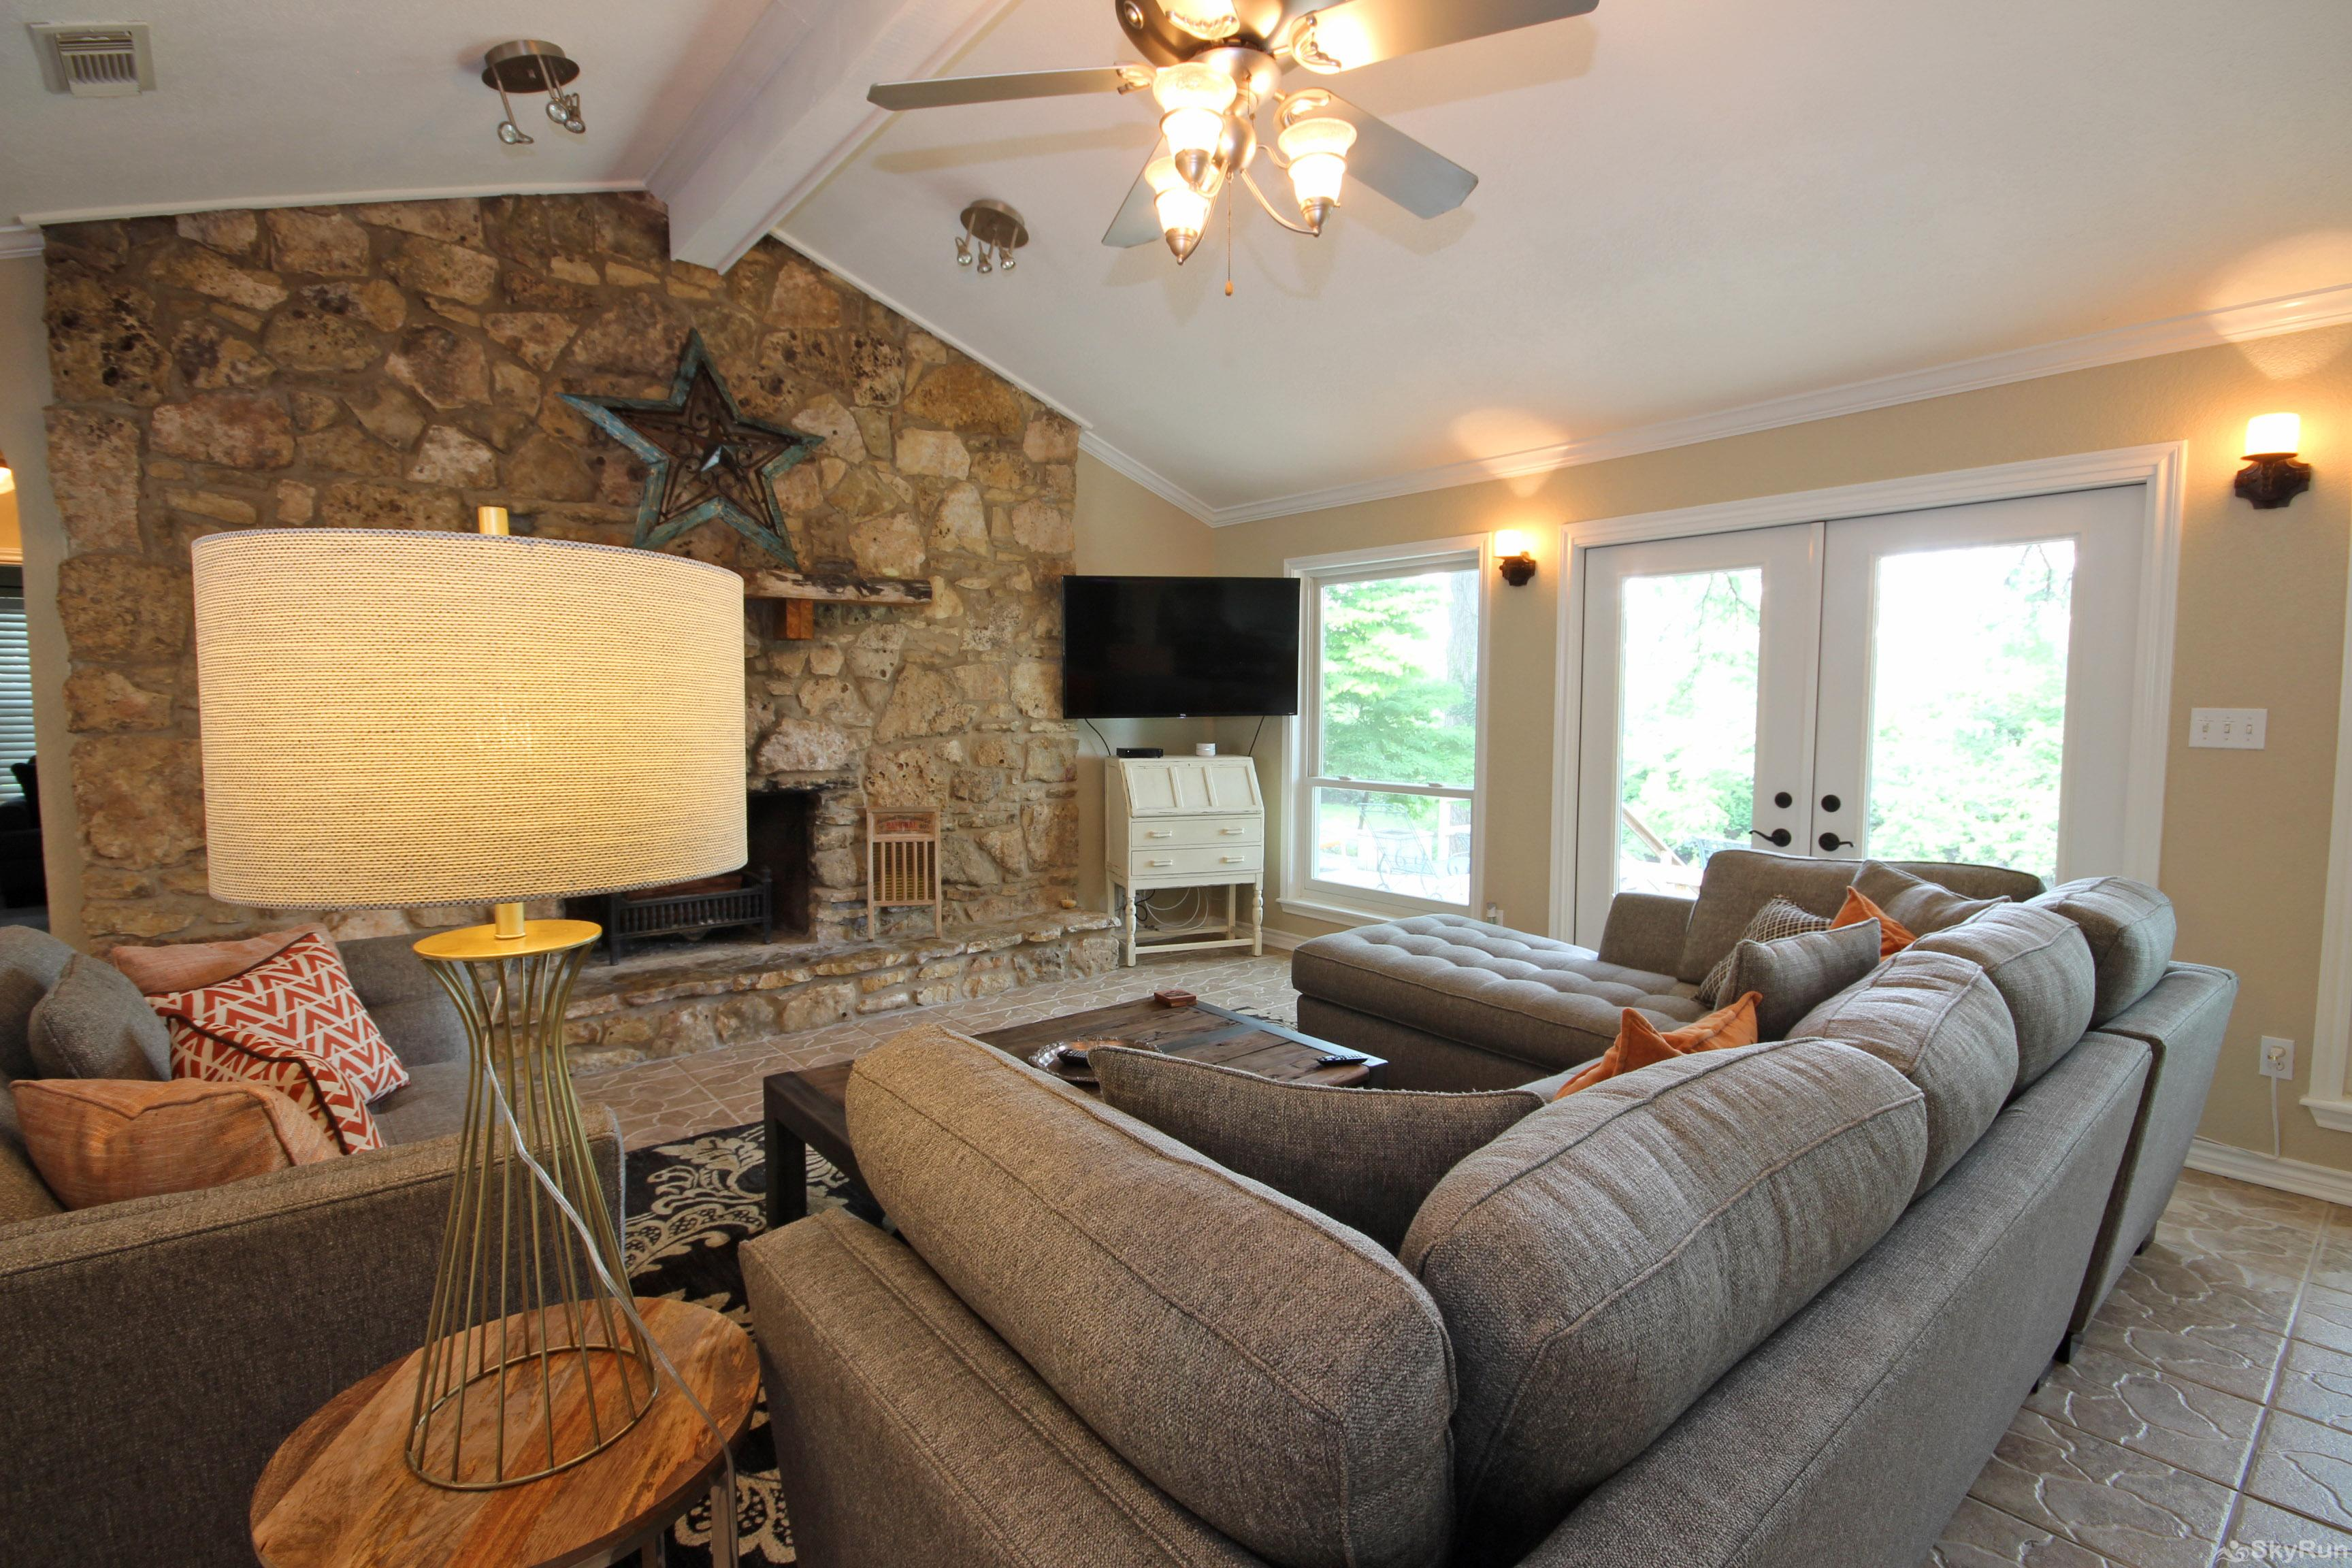 MAVERICK'S RIVER HAUS & GUEST HAUS 55 Inch Smart HDTV in Living Room